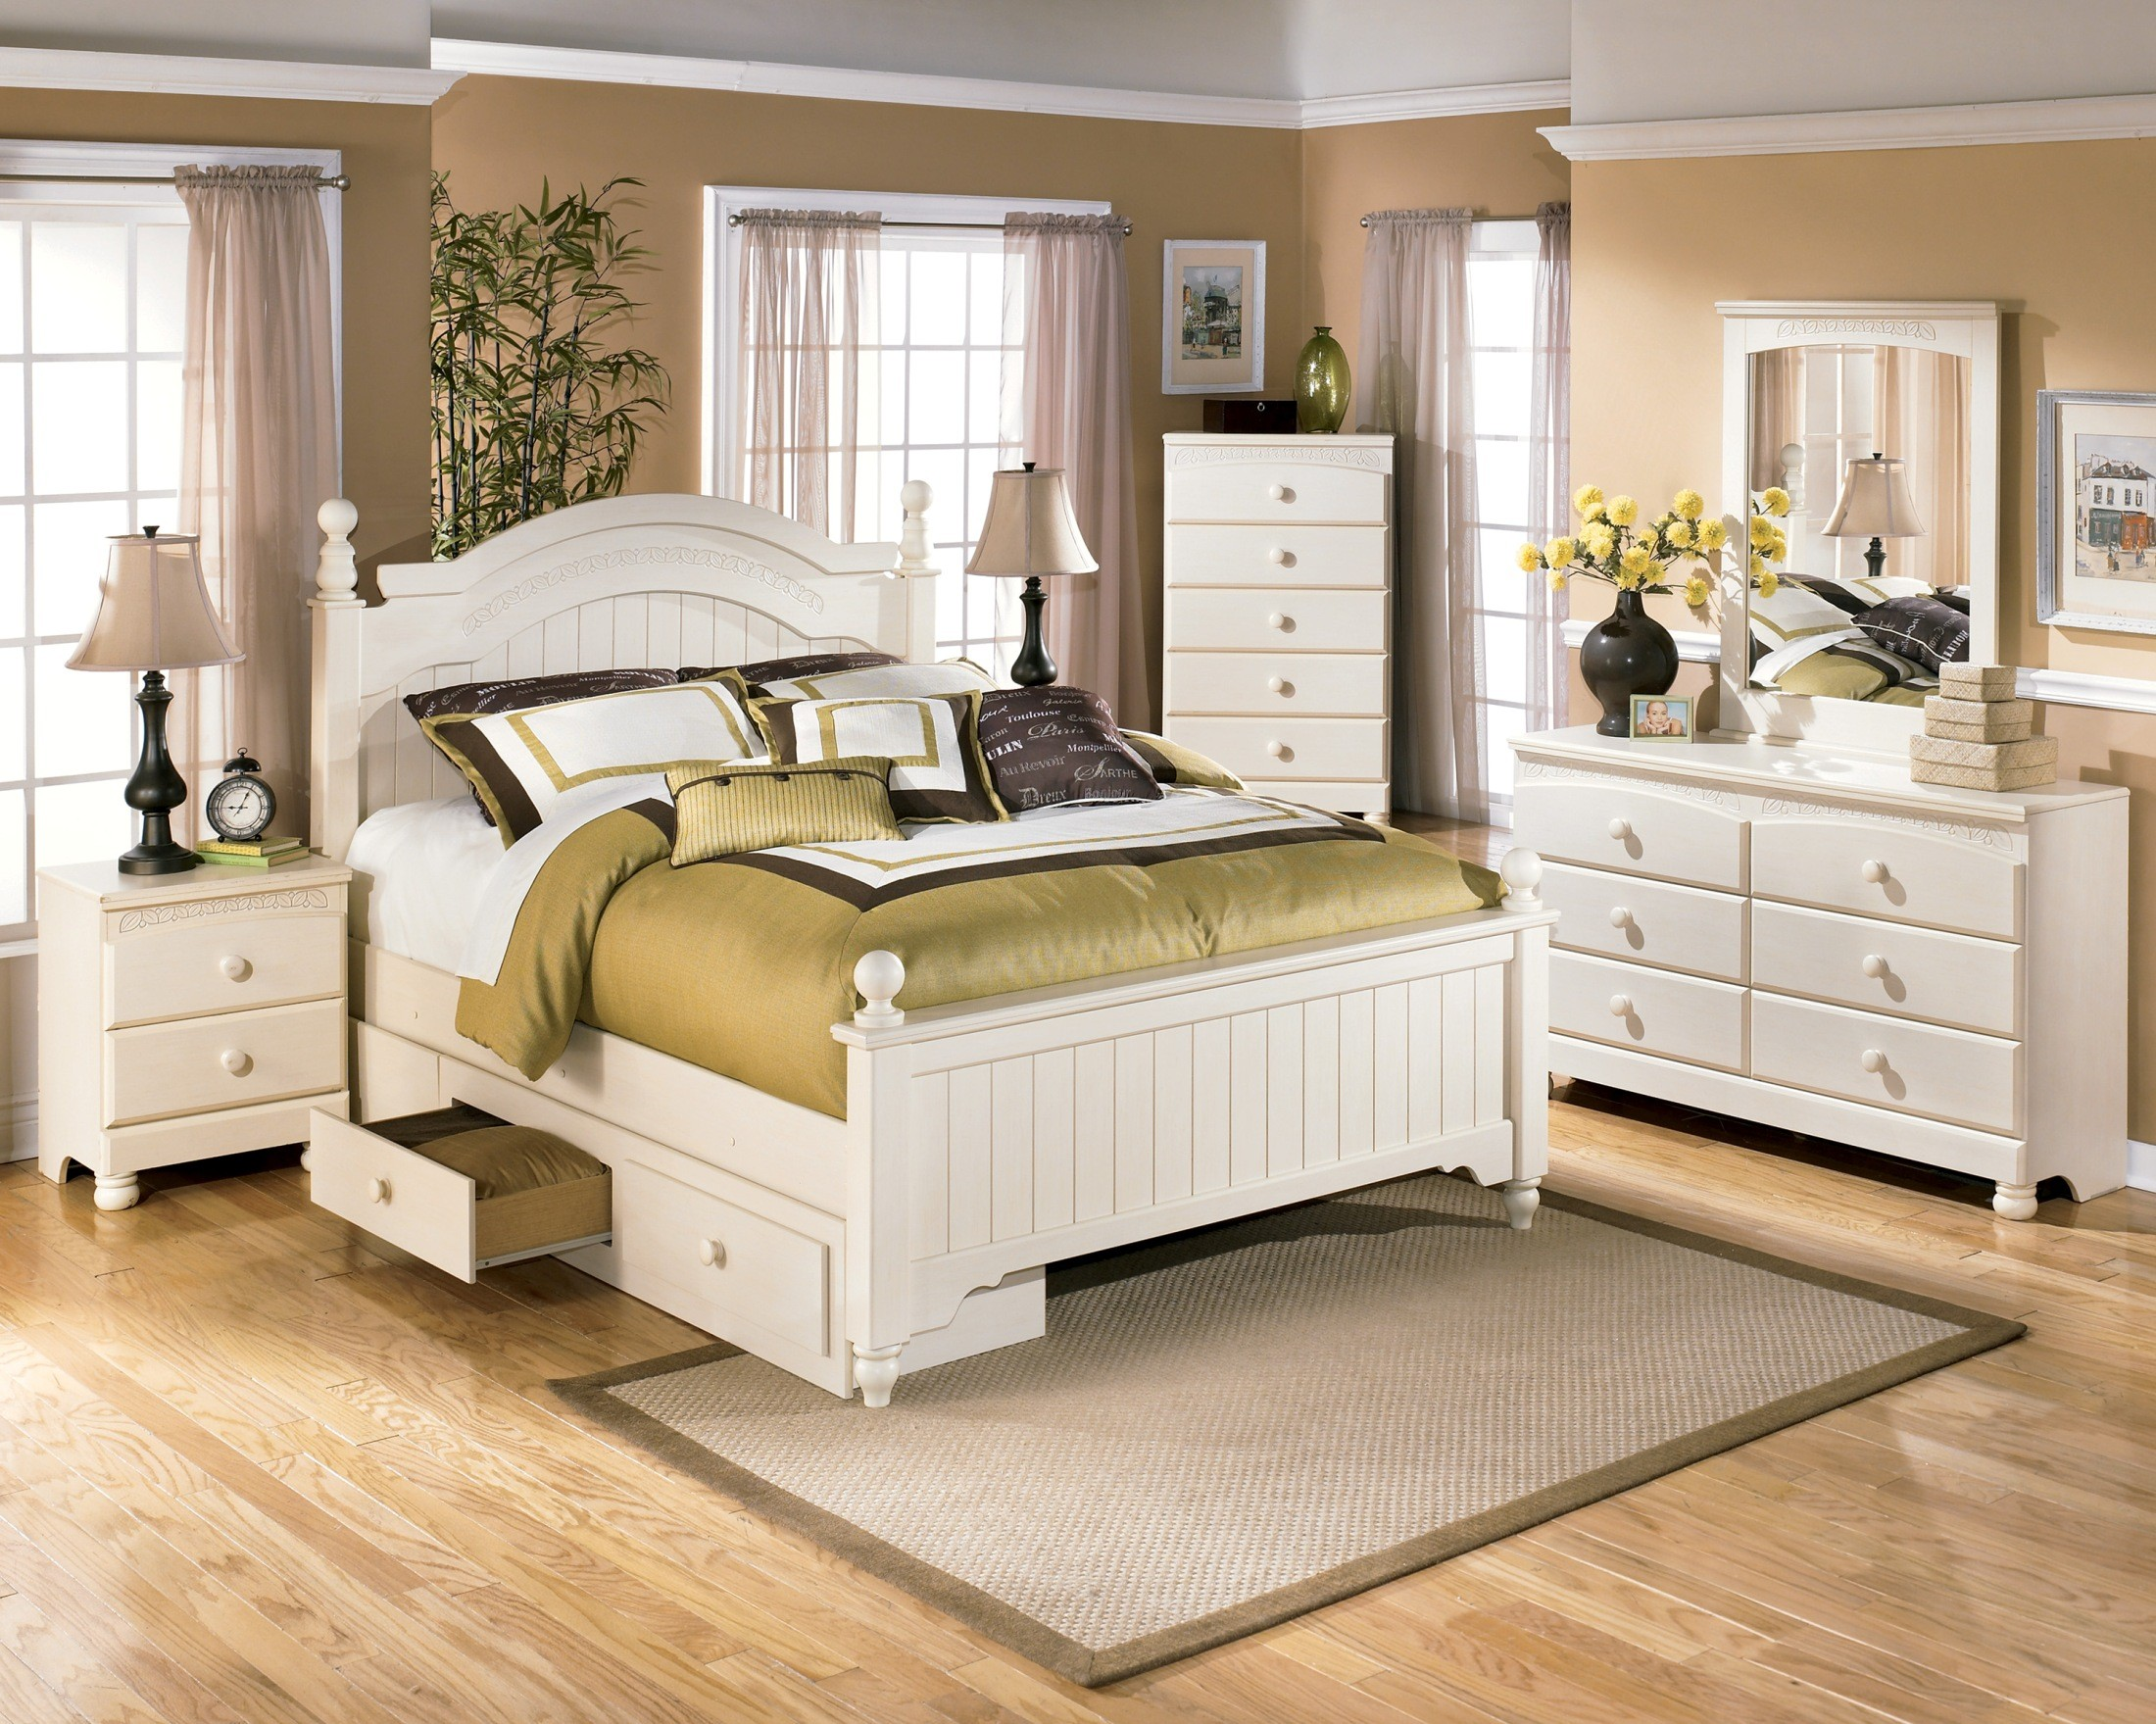 Cottage retreat youth poster storage bedroom set from ashley coleman furniture for Youth storage bedroom furniture